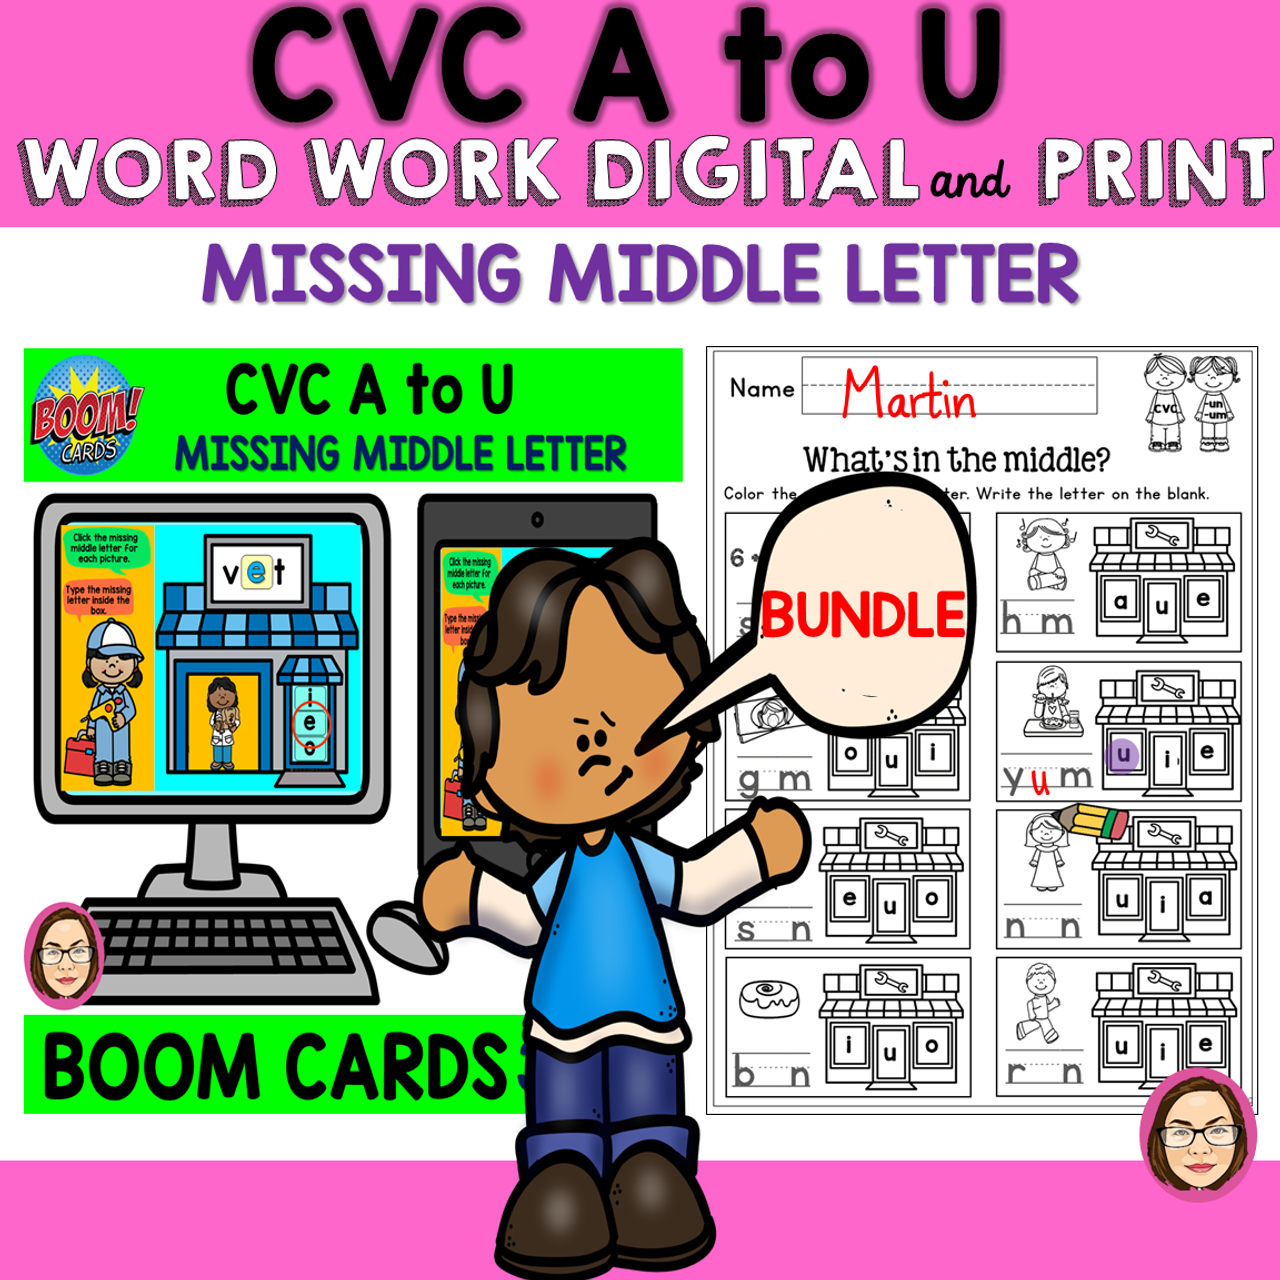 CVC A to U WORD WORK MISSING MIDDLE LETTER DIGITAL and PRINT BUNDLE